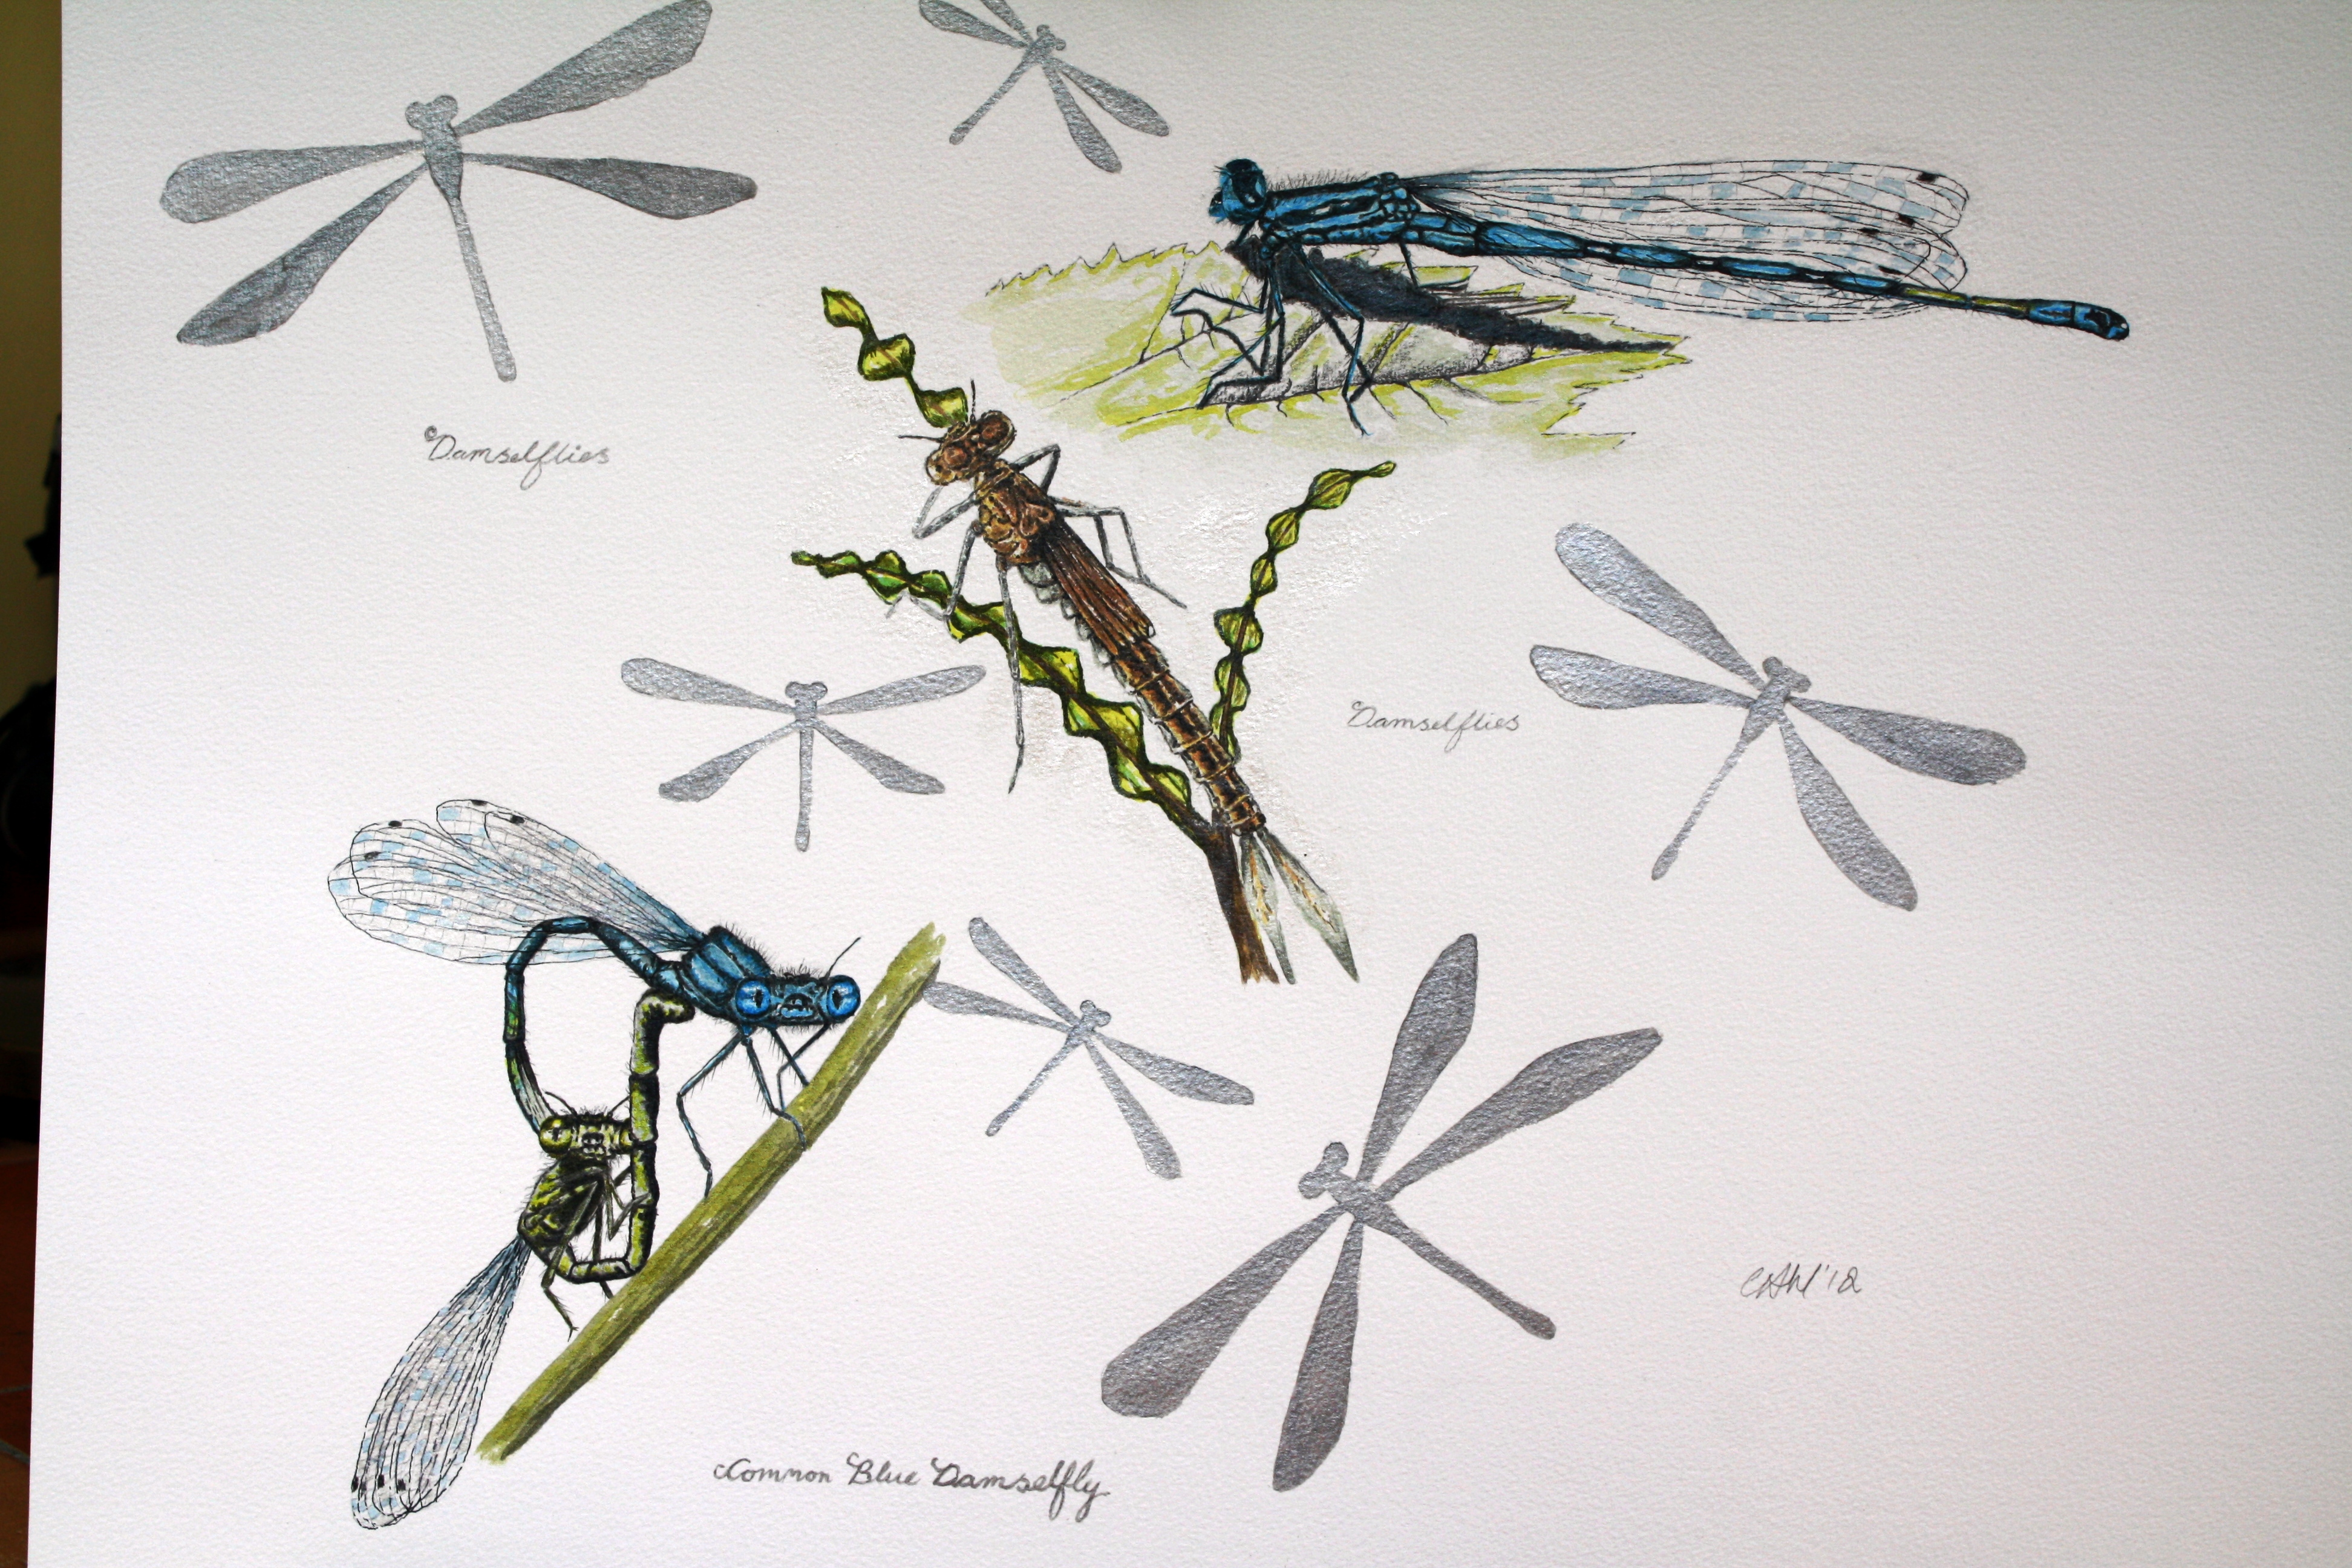 Damselfly Life Cycle  Damselfly Nymphs  DK Find Out